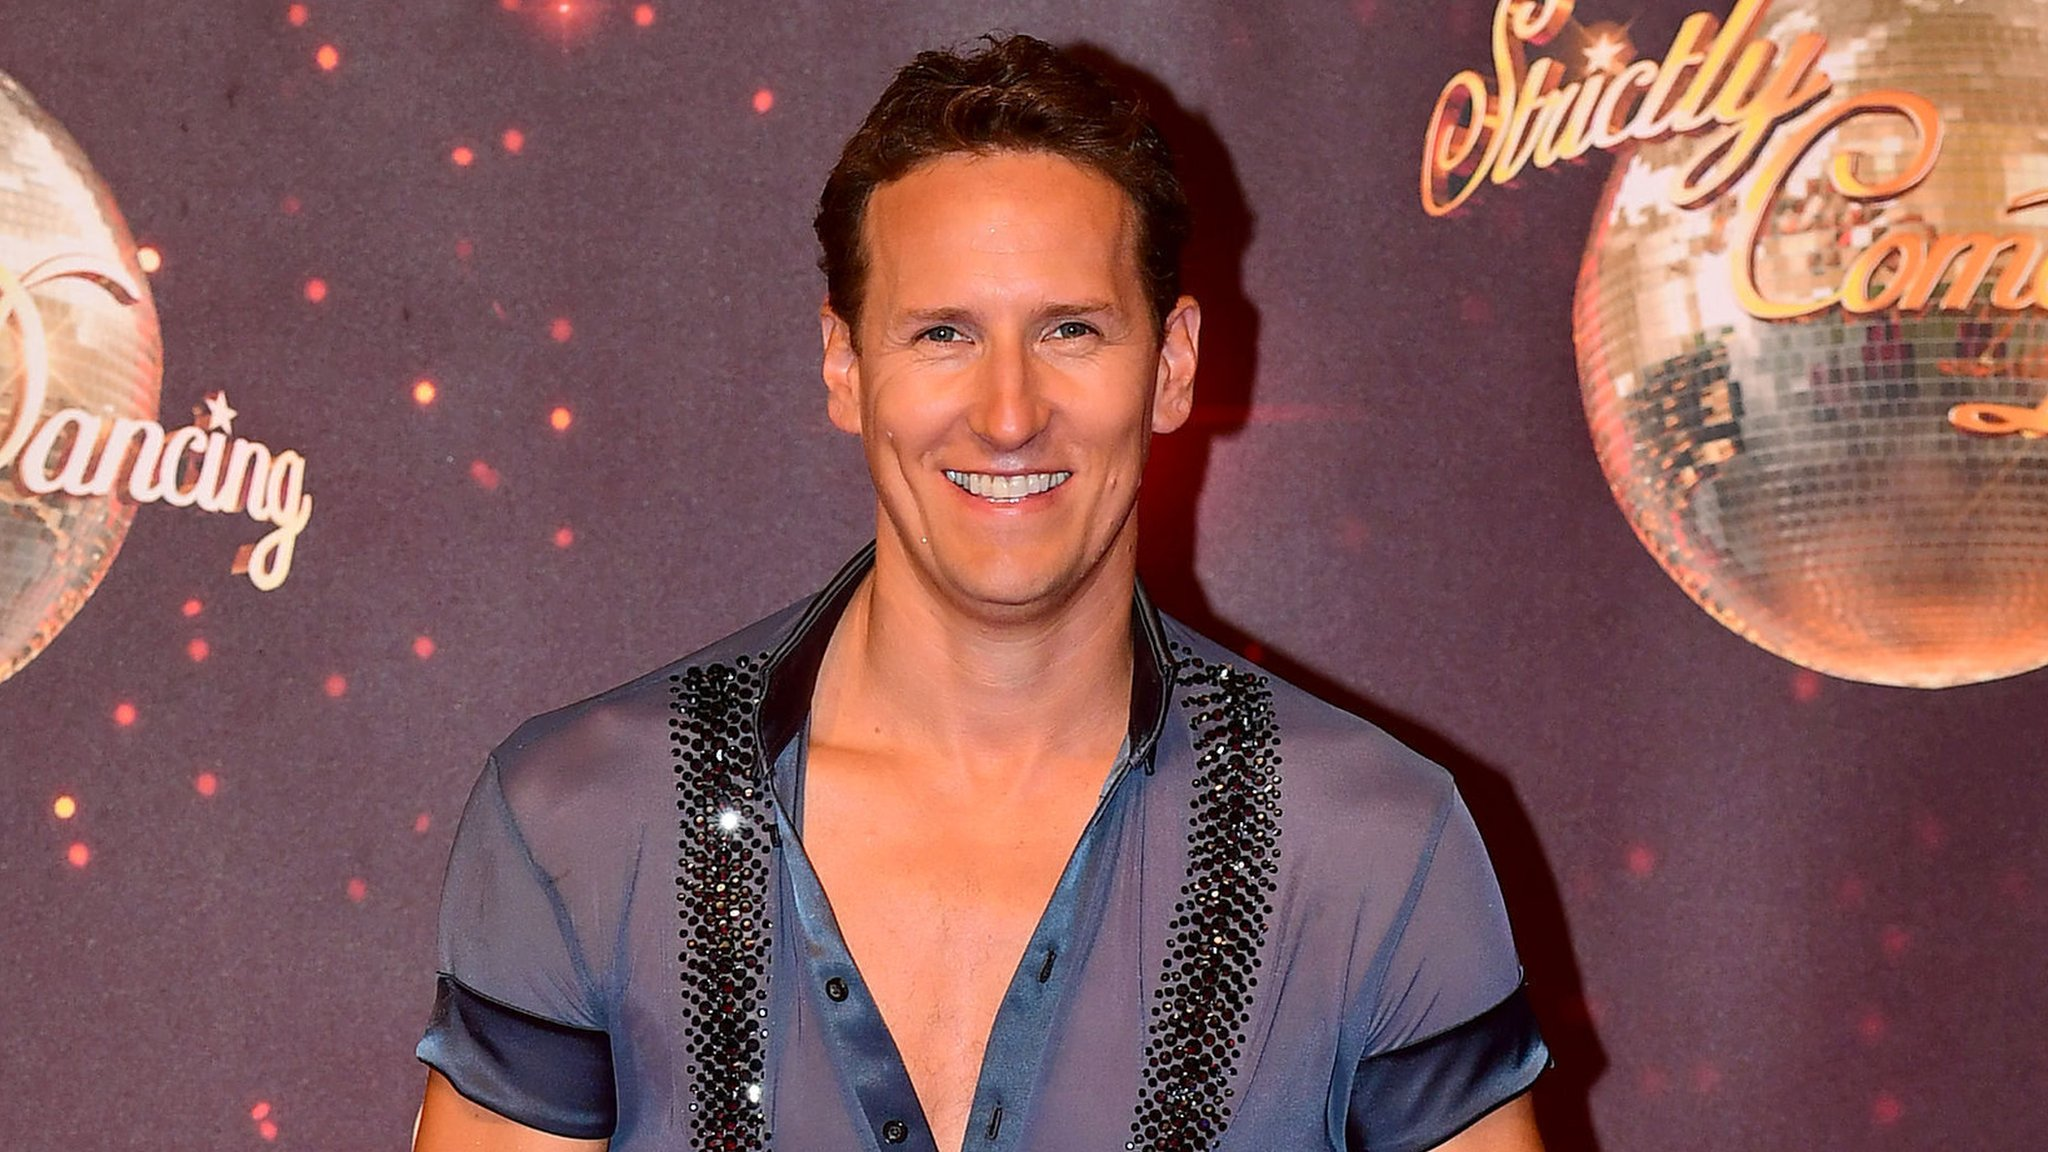 Strictly Come Dancing denies mystery bug reports